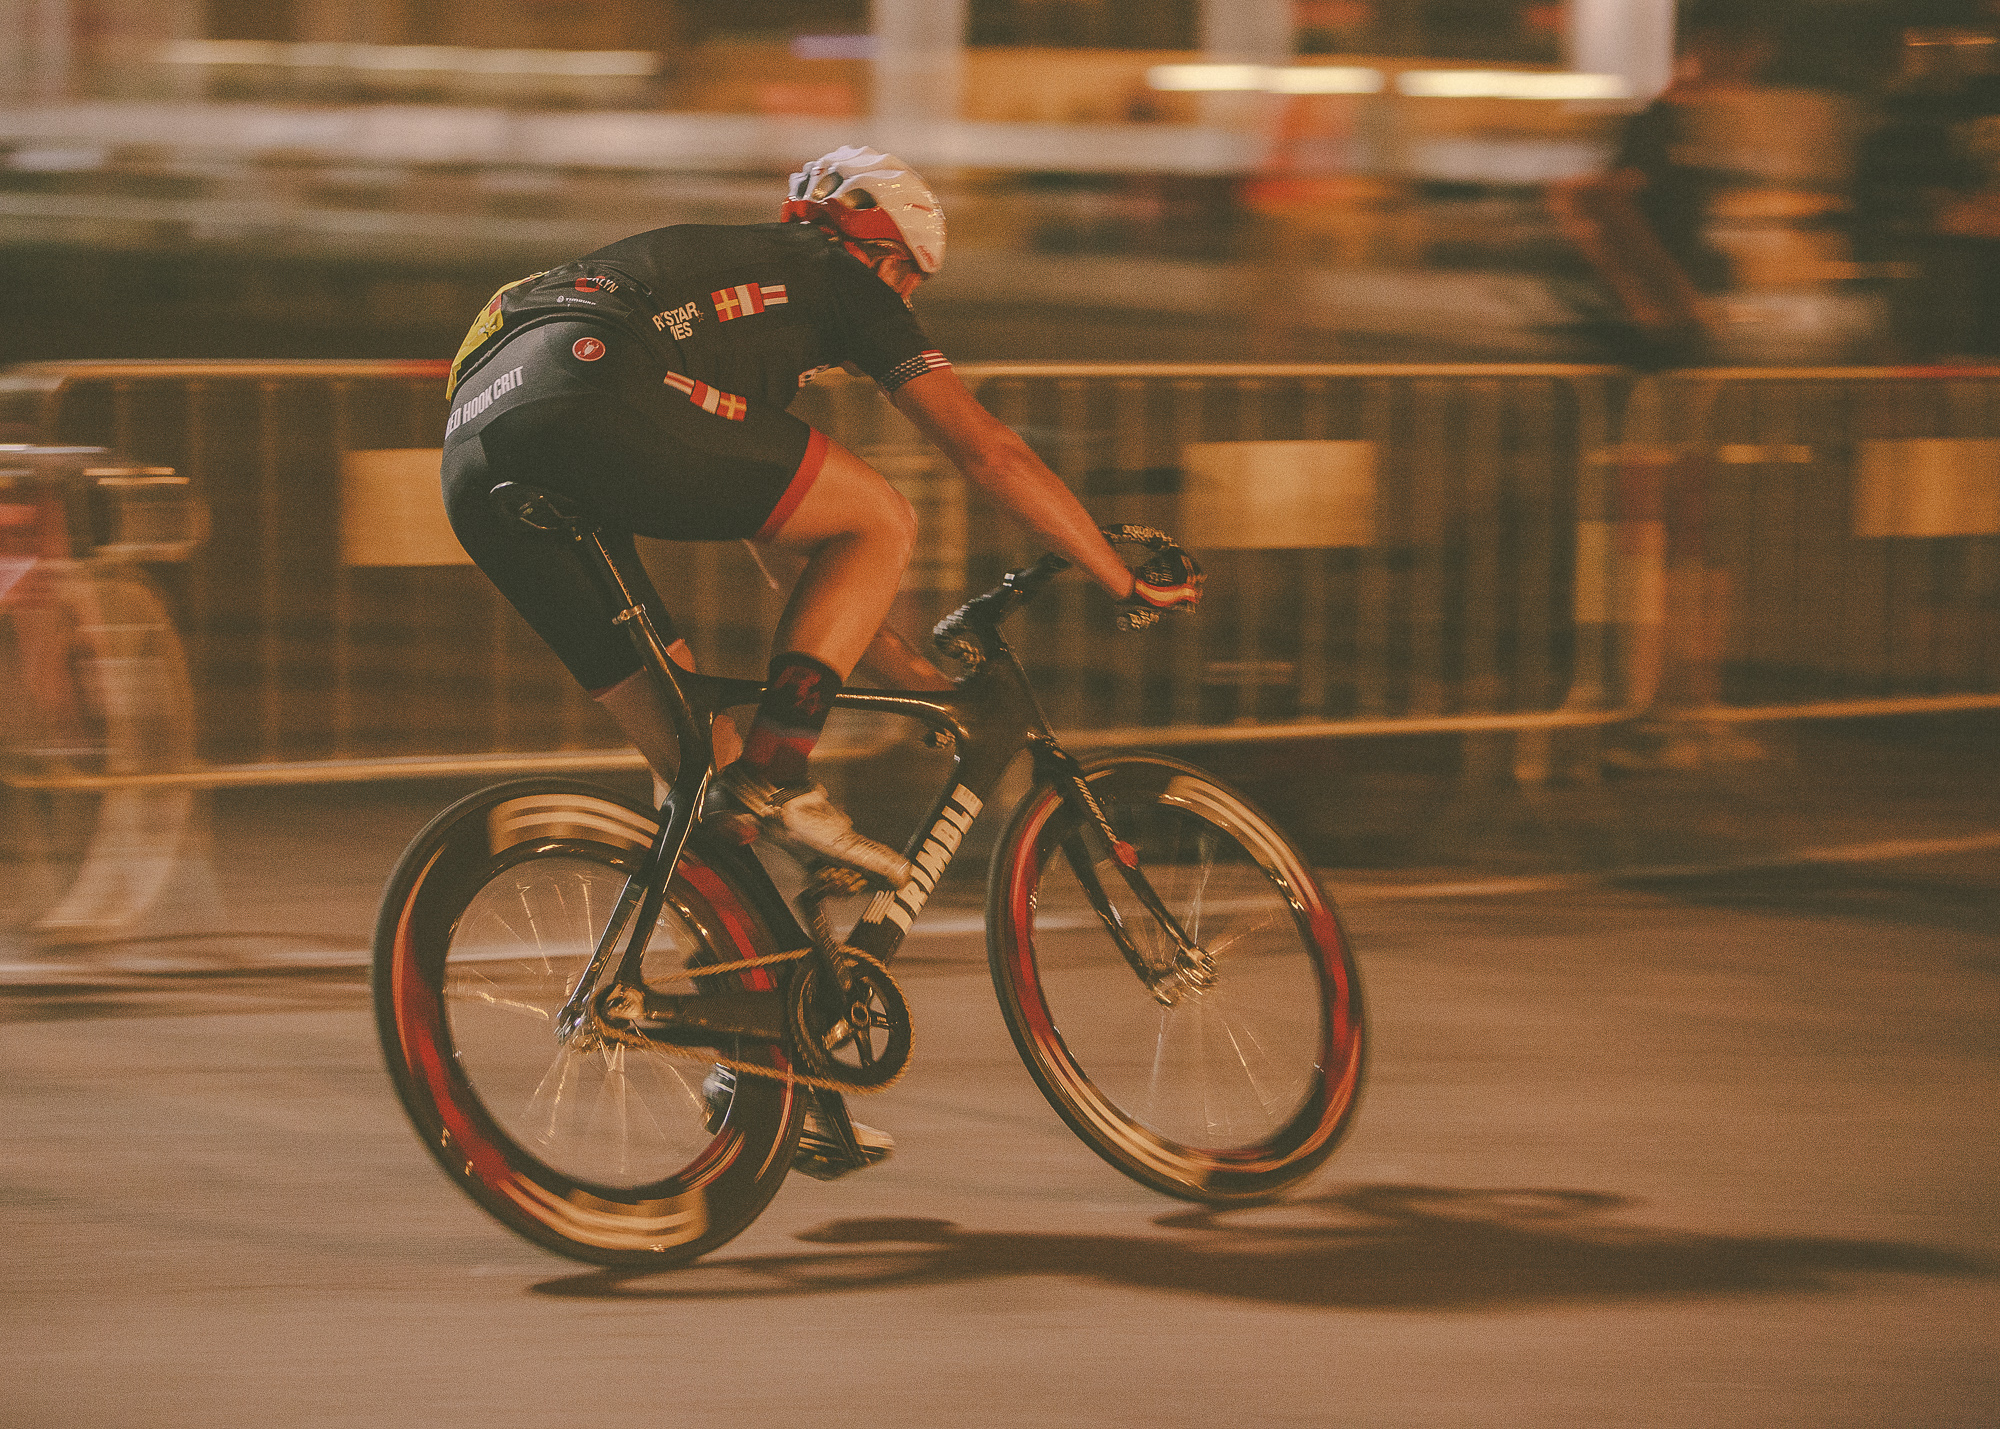 RED HOOK CRITERIUM – Barcelona, from 2013 to 2017